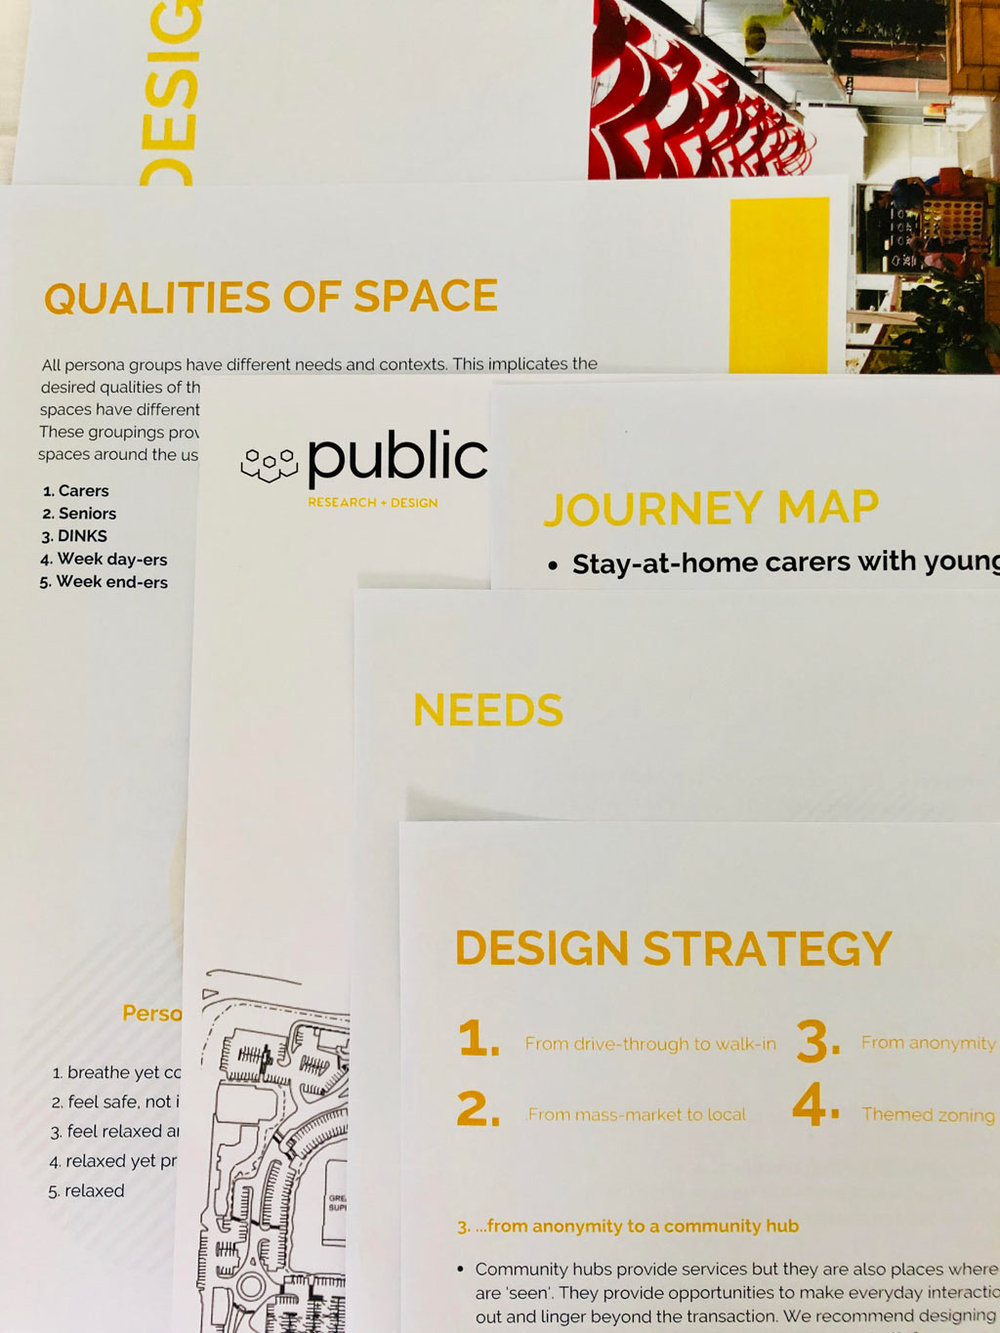 public-research-design-Brisbane-Lena-Belin